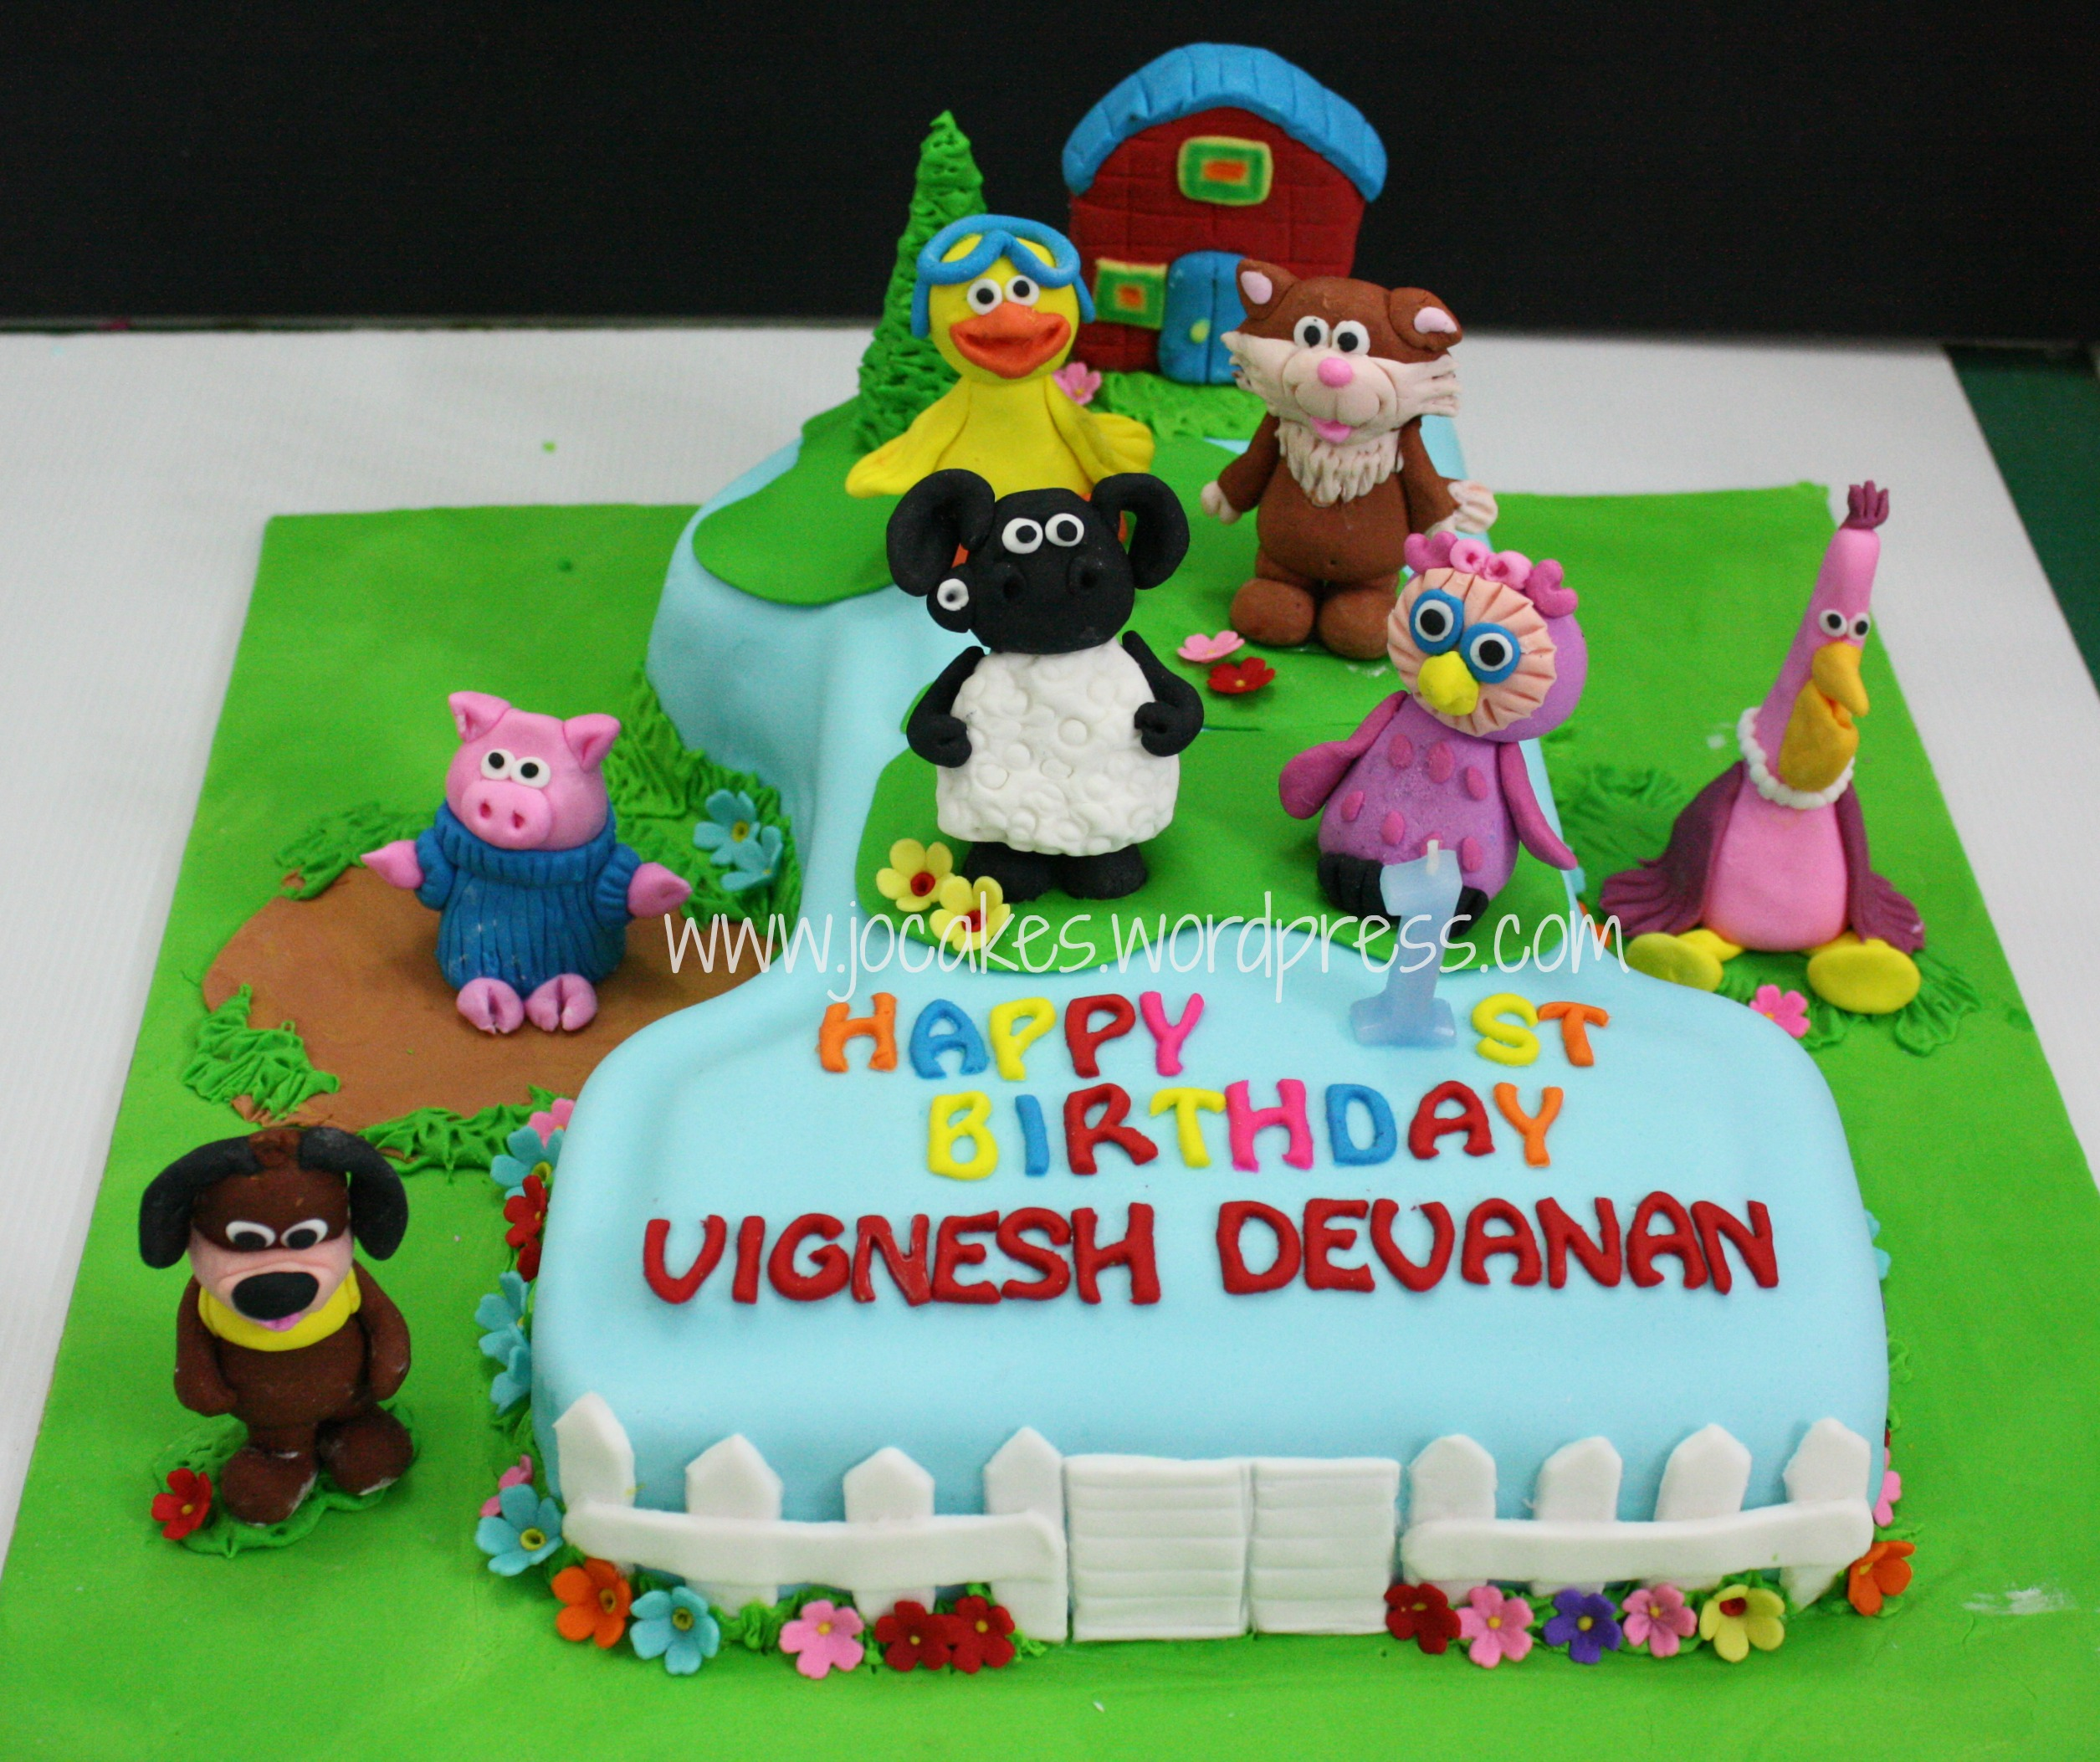 Timmy Time Theme Cake And Cookies For Vignesh Devanan S